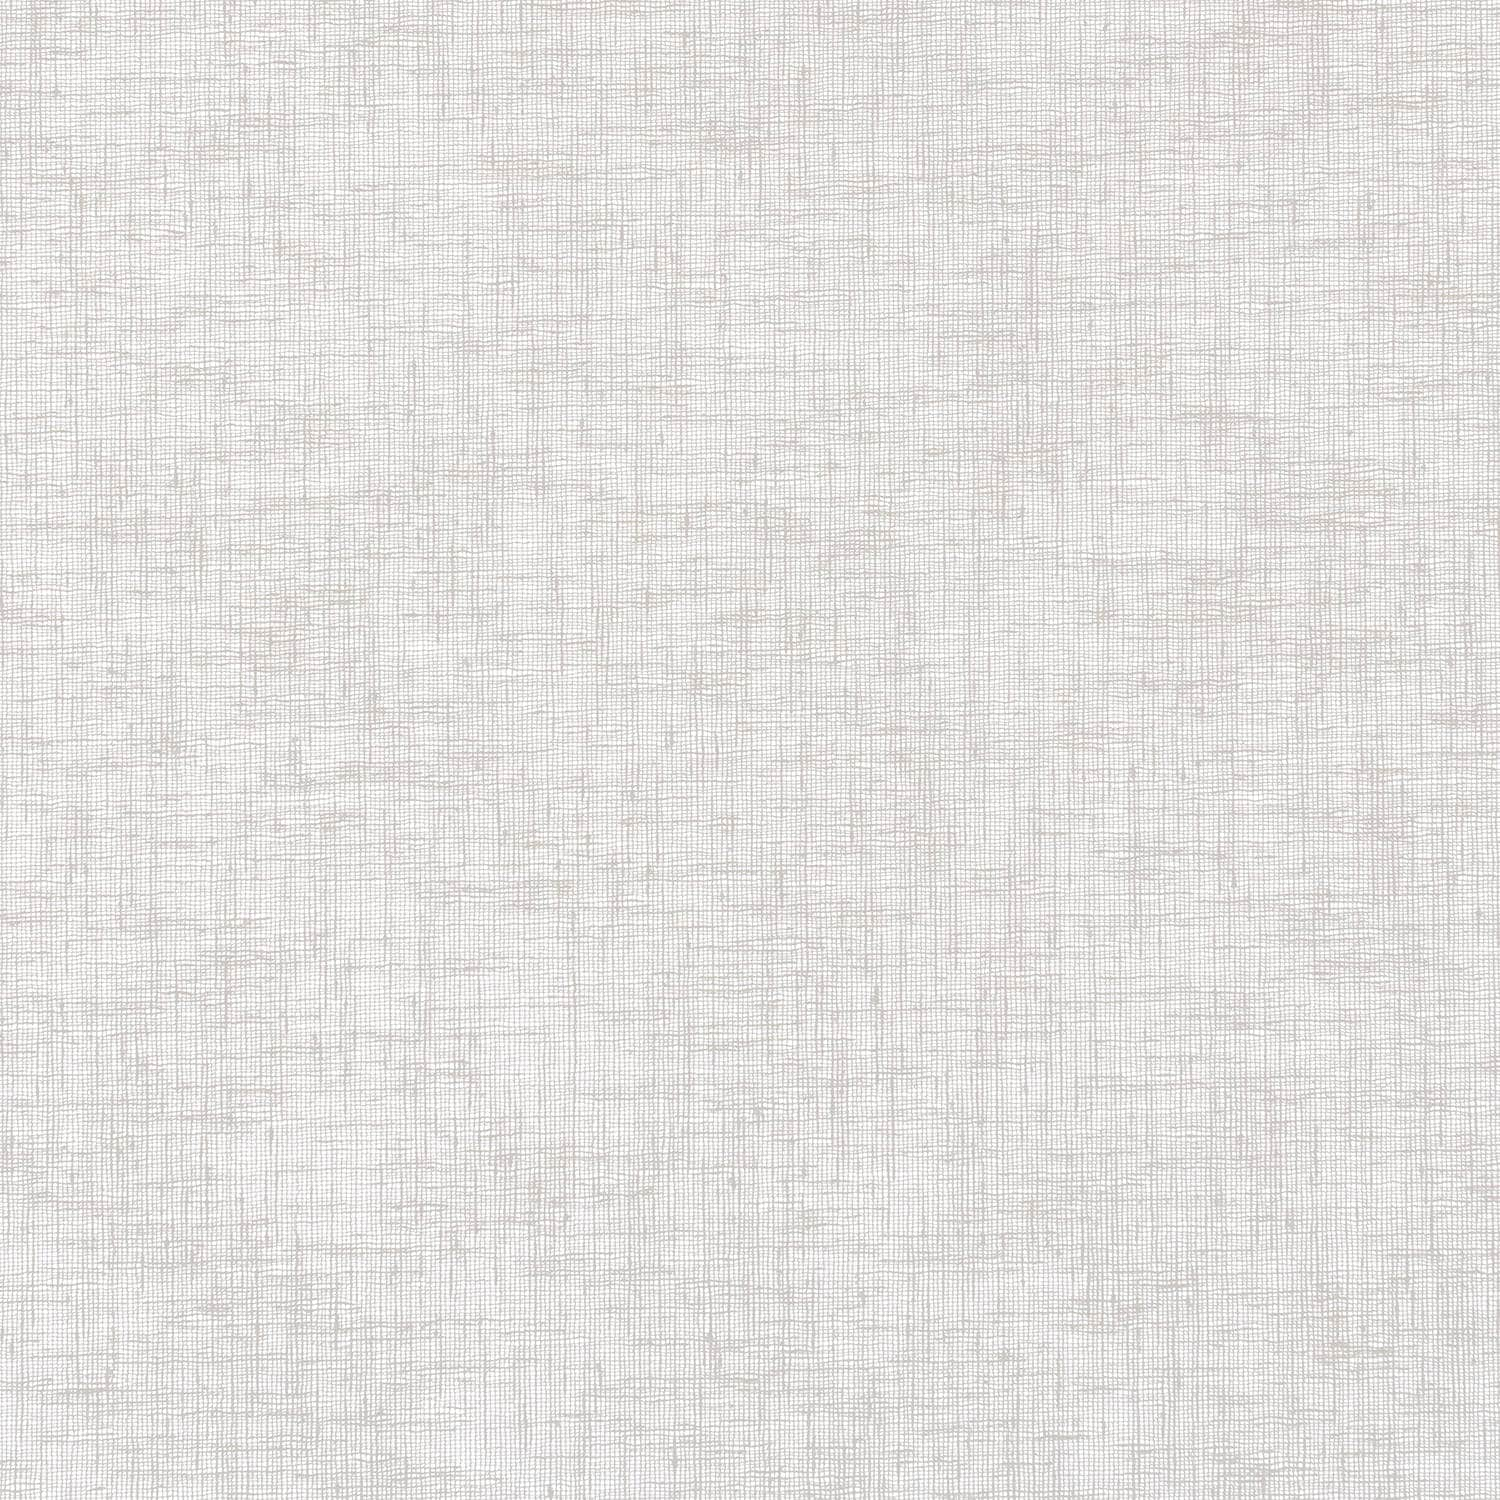 Hawthorn Taupe Canton Crepe Textured Semi Sheer Roller Shade Swatch